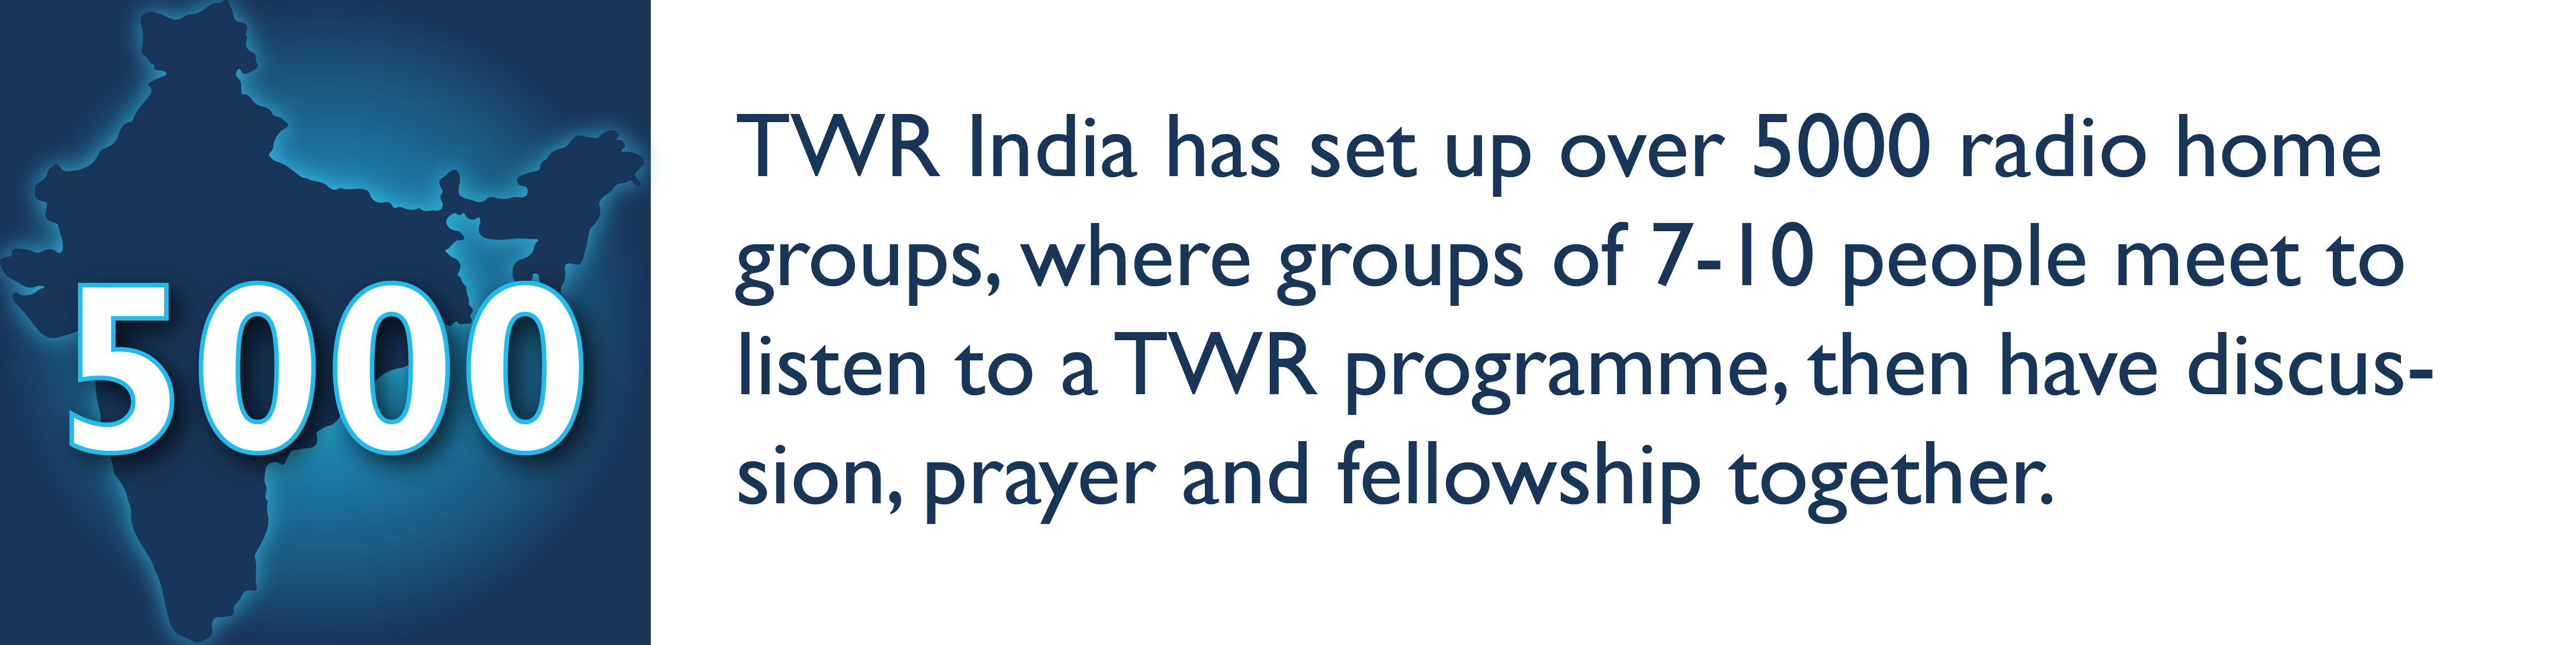 TWR India has set up over 5000 radio home groups, where groups of 7-10 people meet to listen to a TWR programme, then have discussion, prayer and fellowship together.